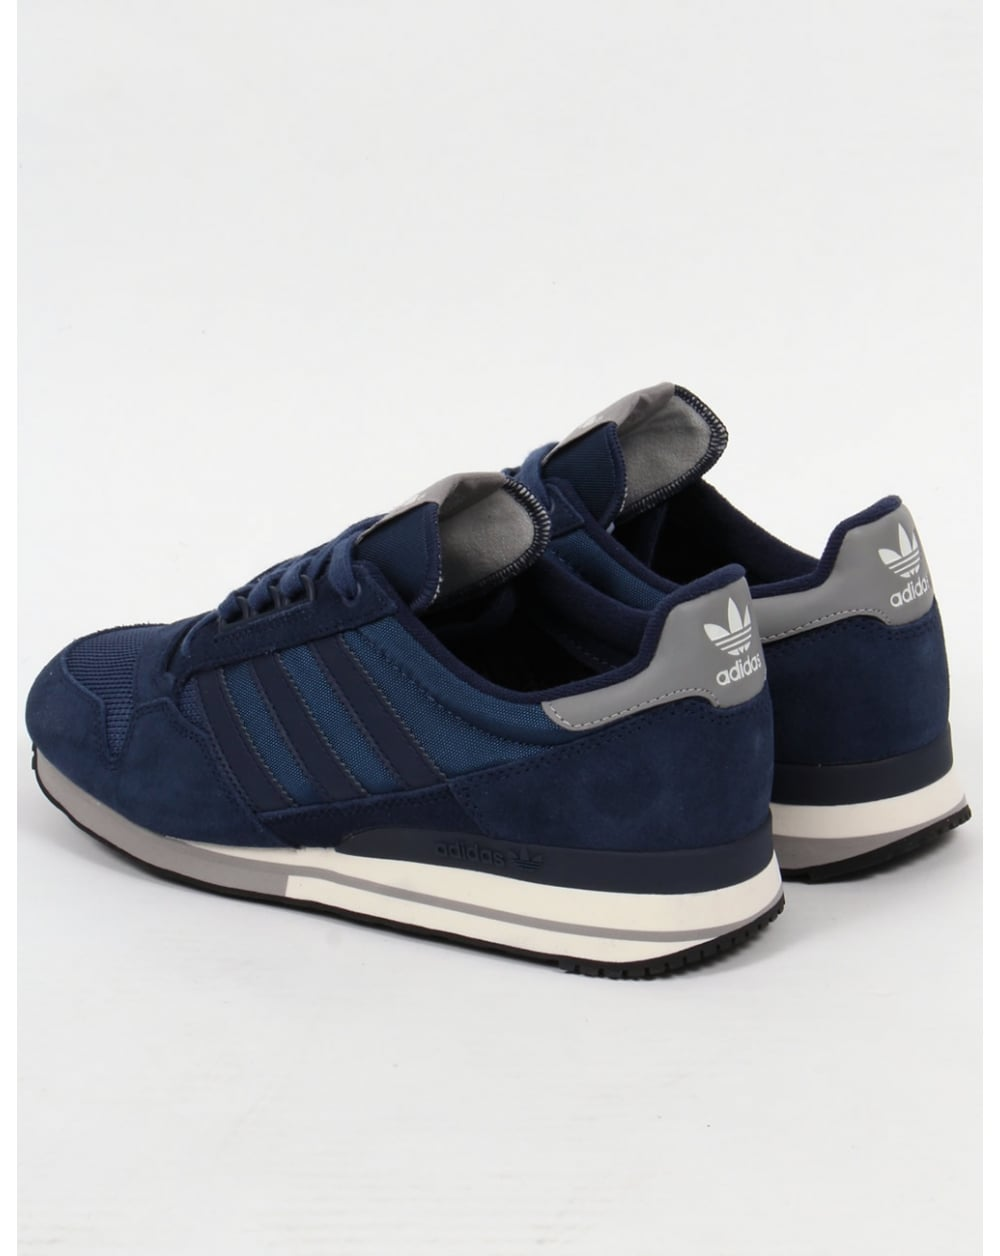 adidas zx 500 og trainers navy white solid grey originals. Black Bedroom Furniture Sets. Home Design Ideas